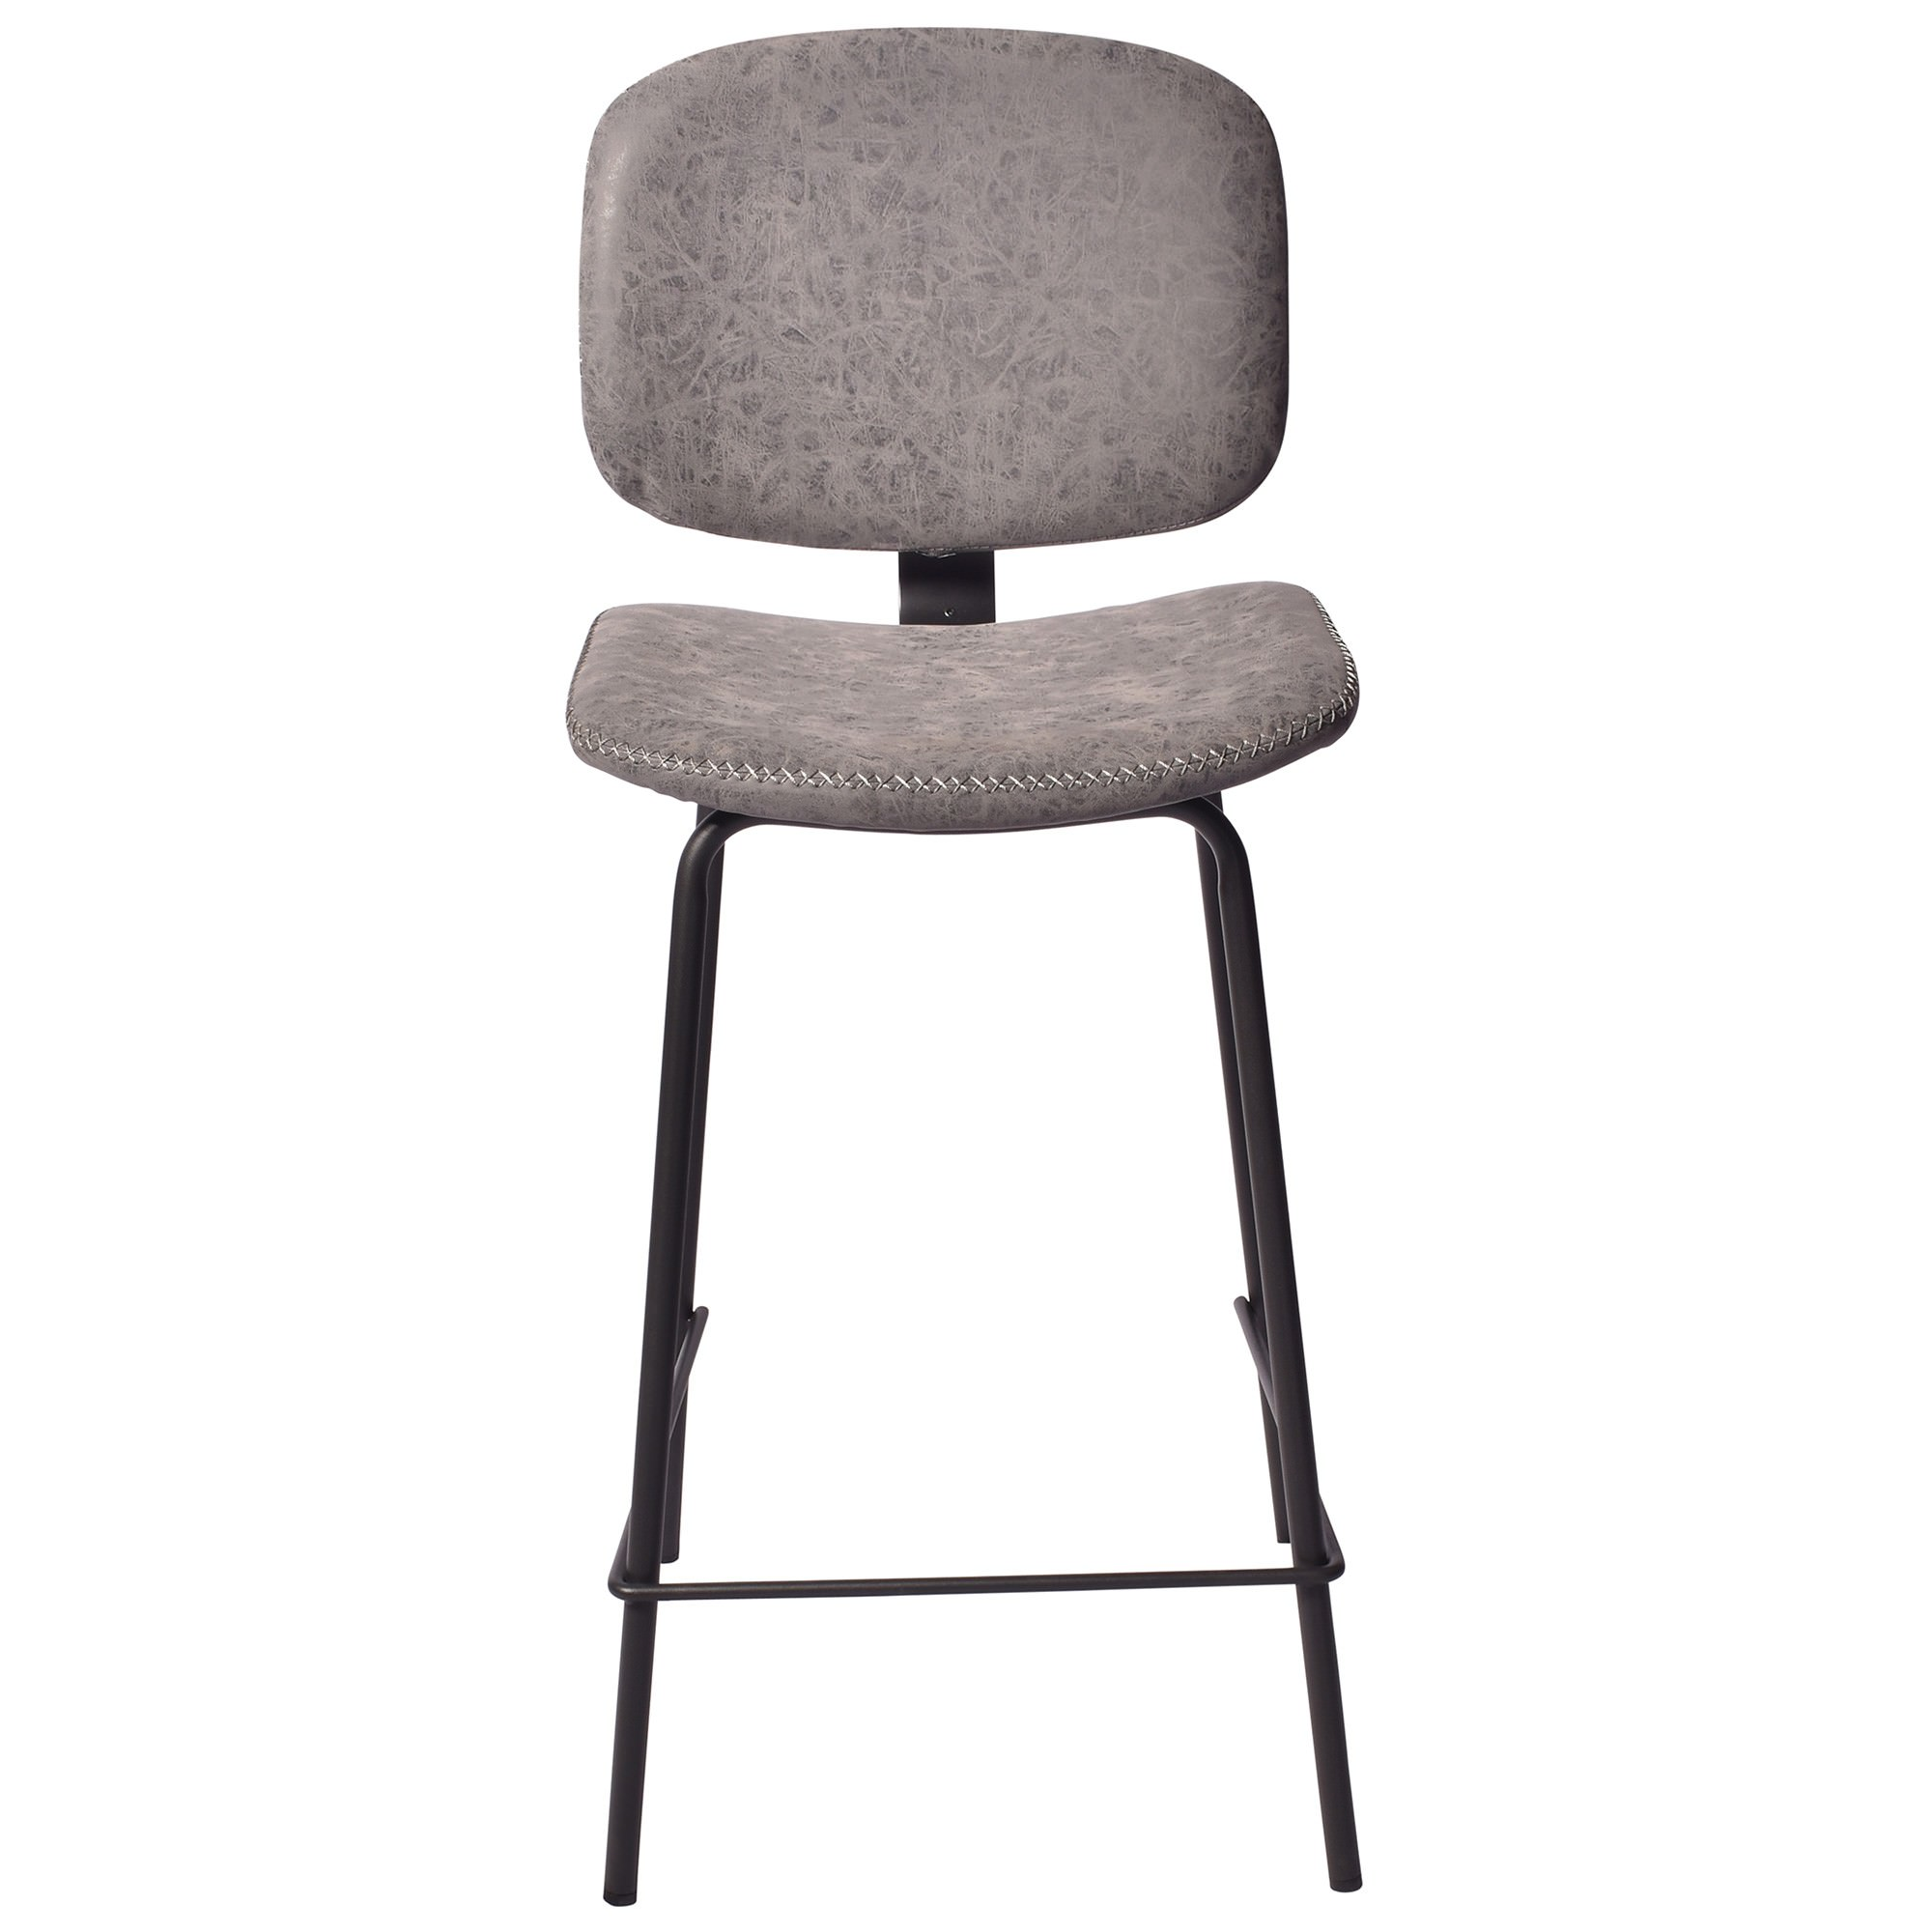 Lismore PU Leather Counter Stool, Seal Grey